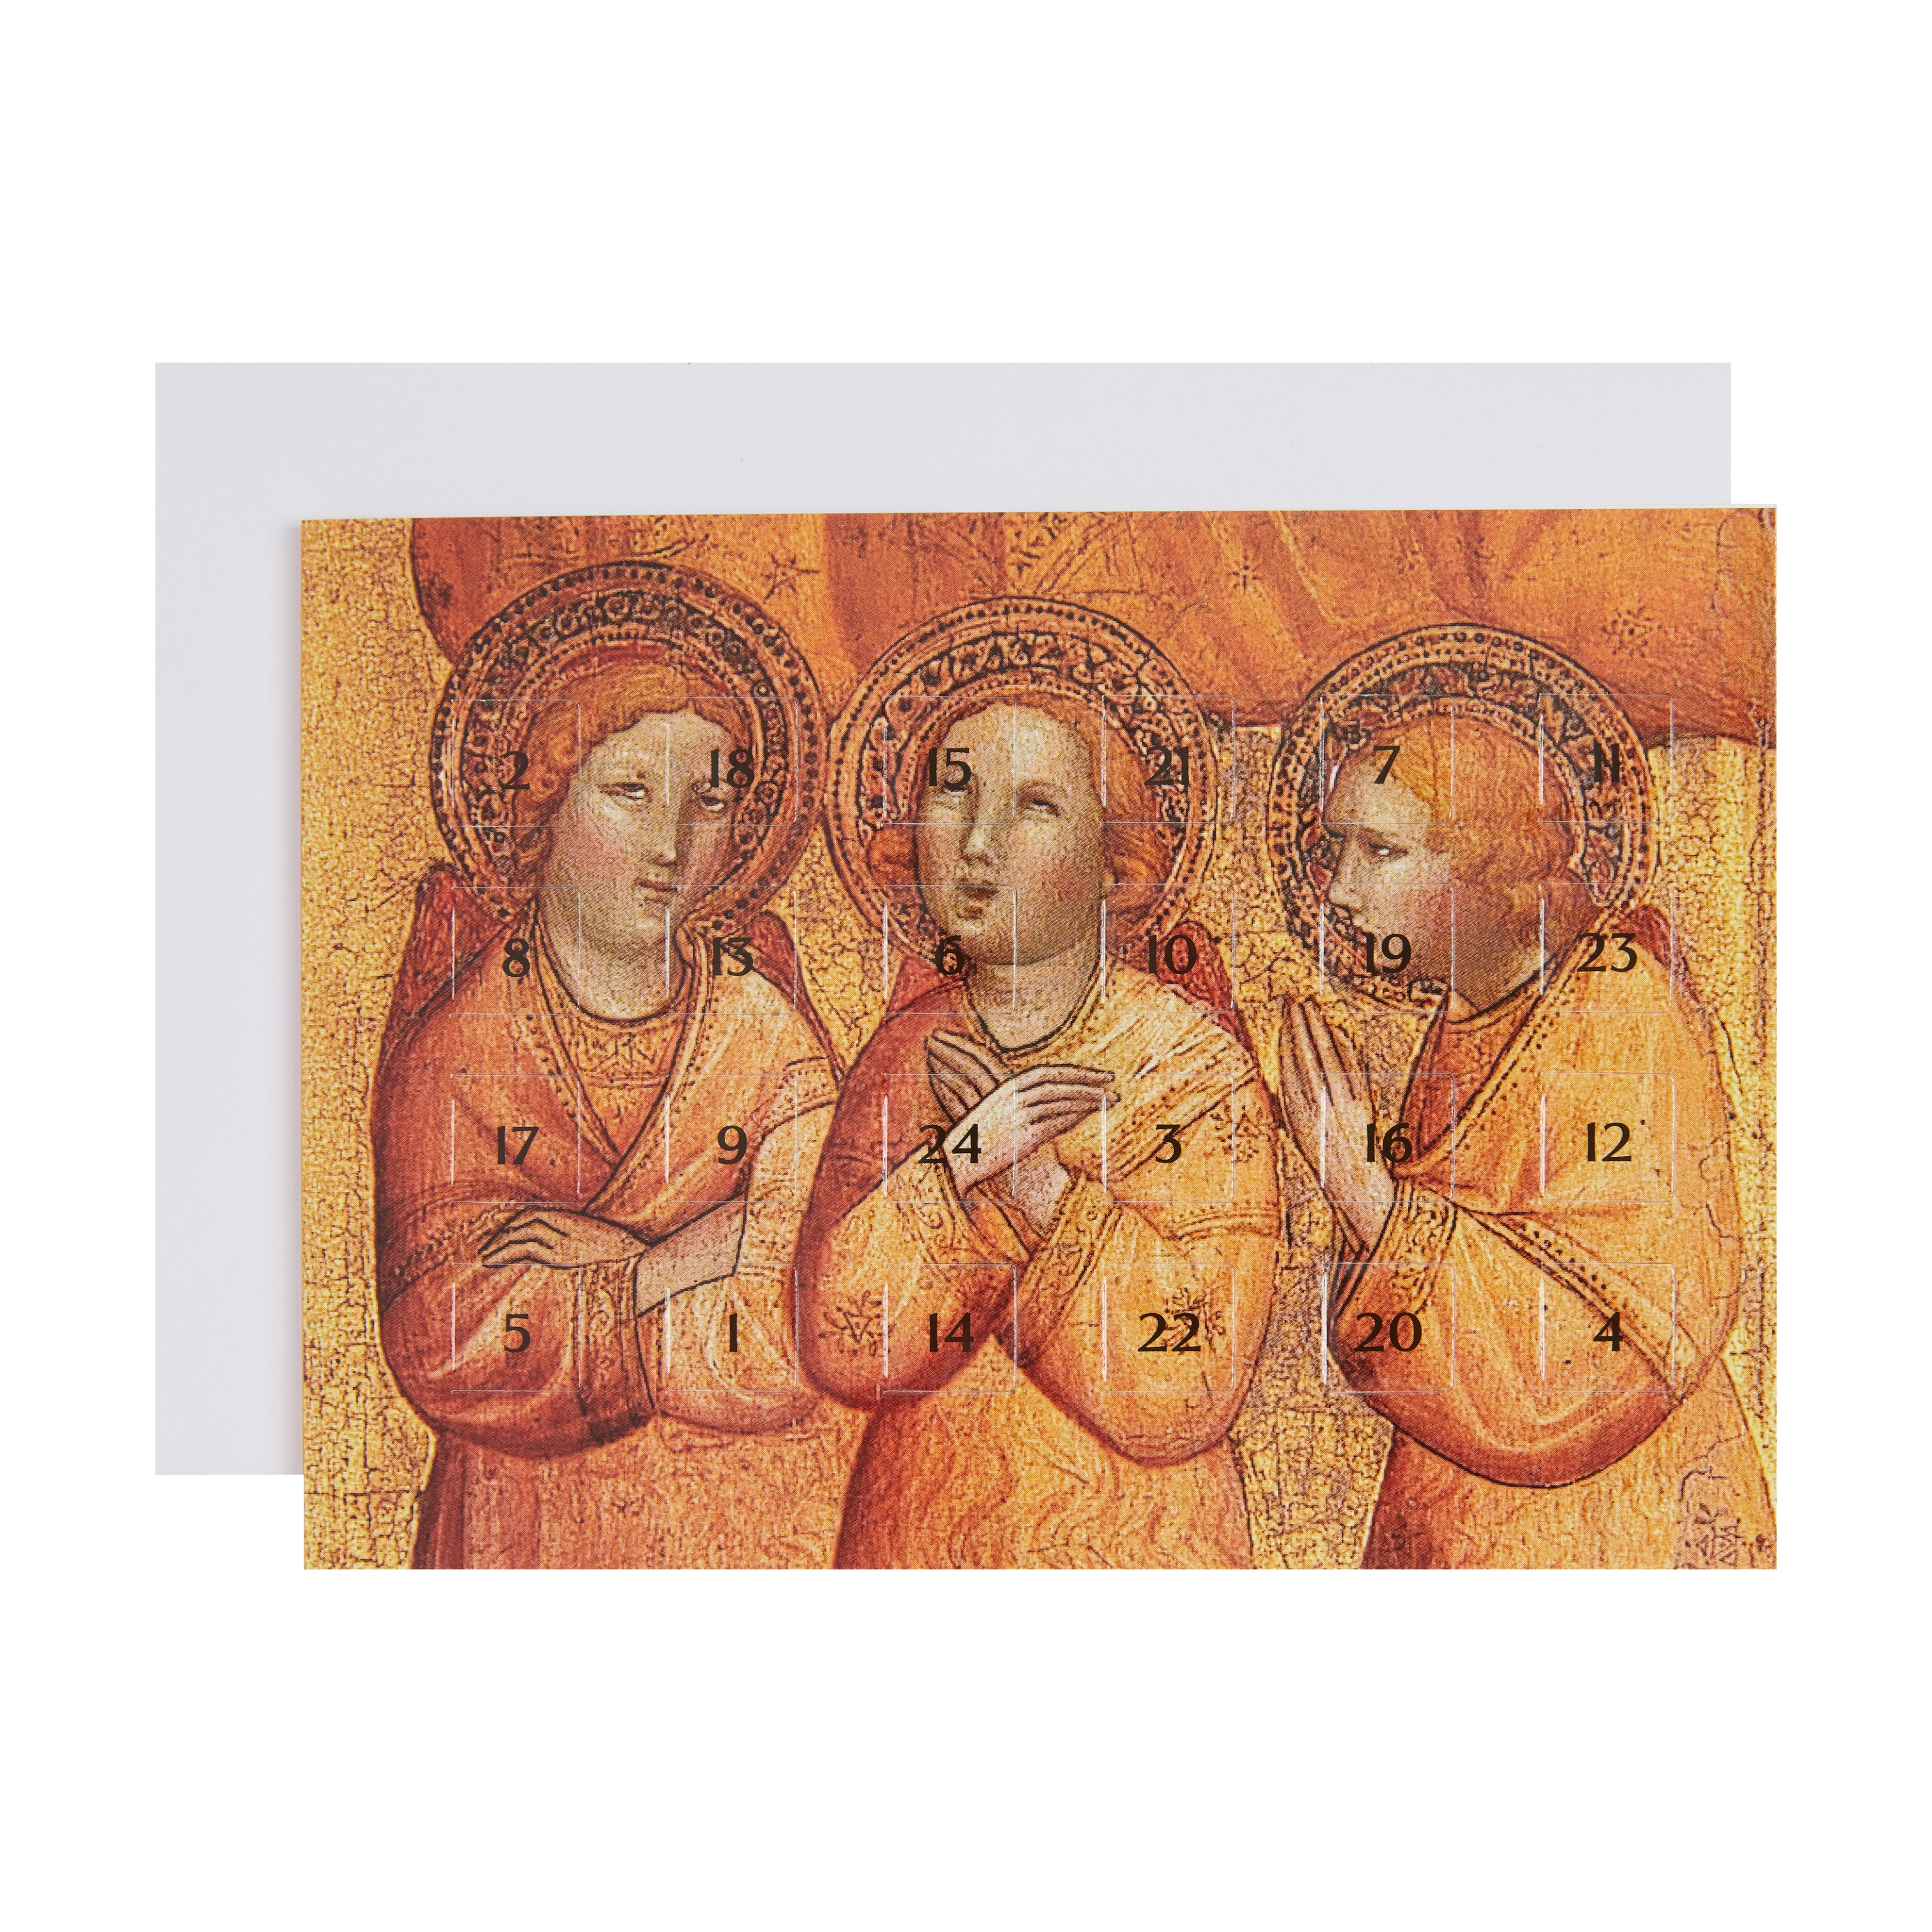 A product image depicting Angels by Ciccarello - Advent Card